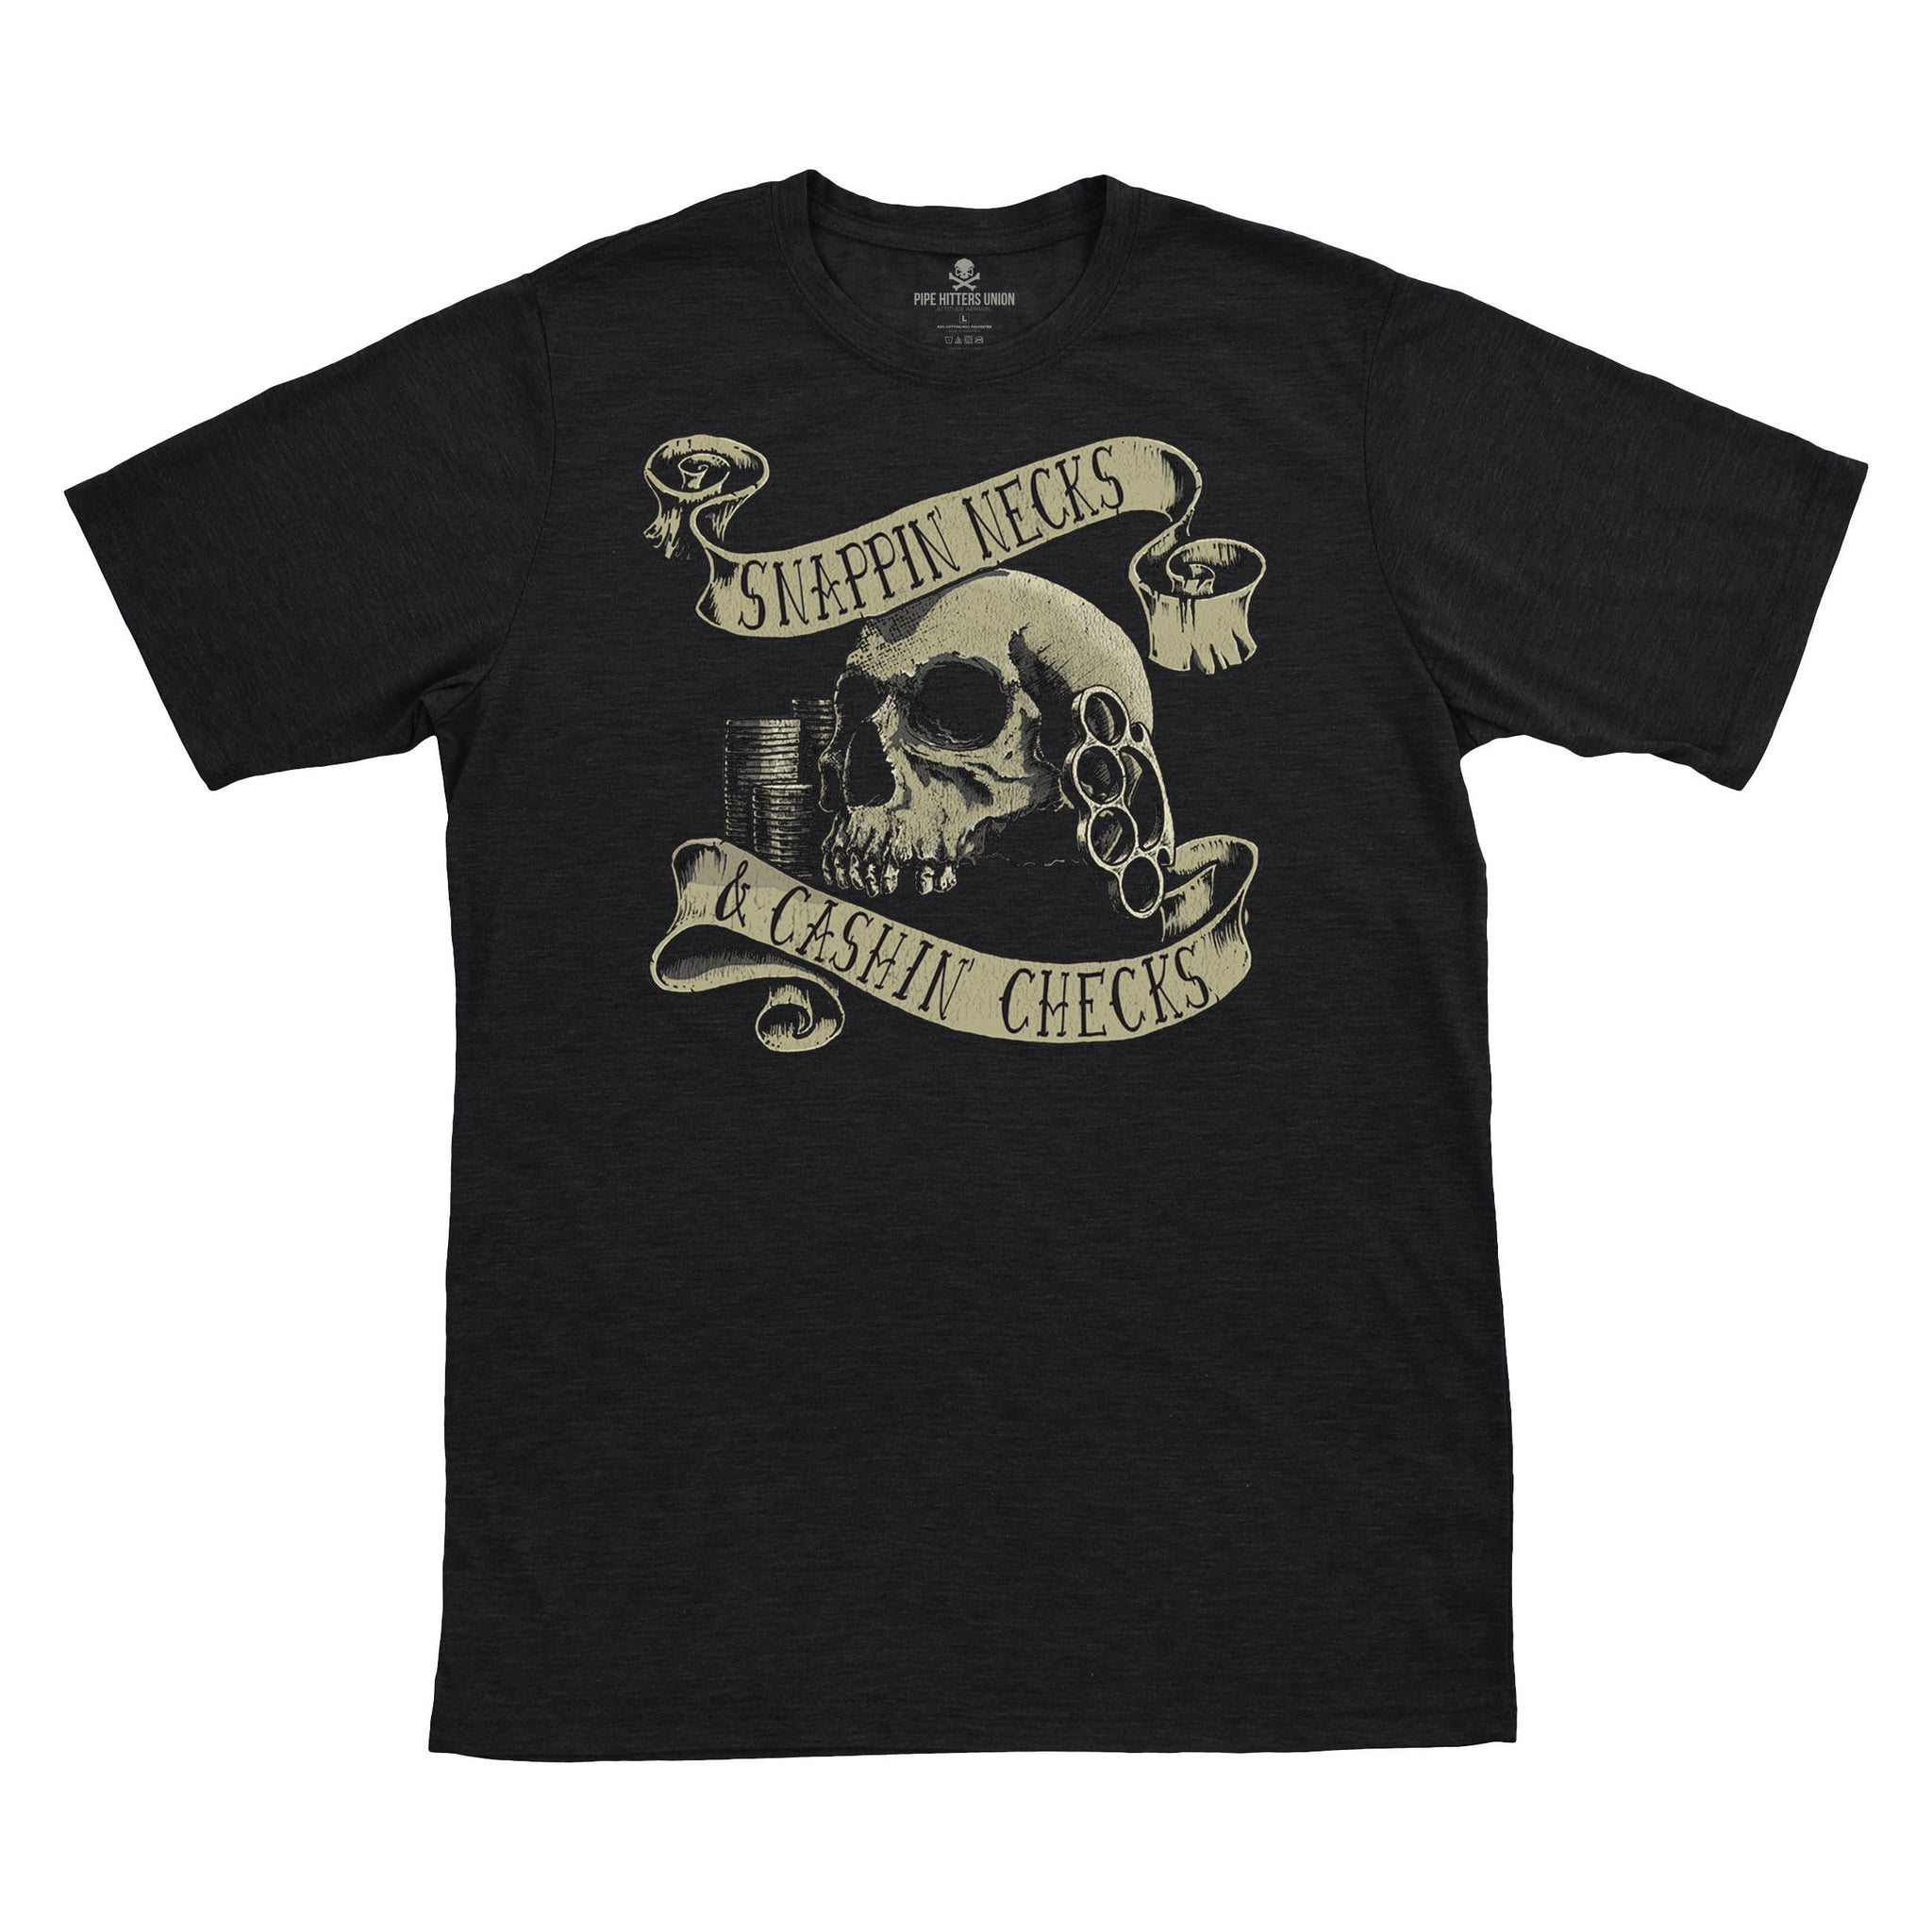 Snappin Necks & Cashin Checks - Black - T-Shirts - Pipe Hitters Union